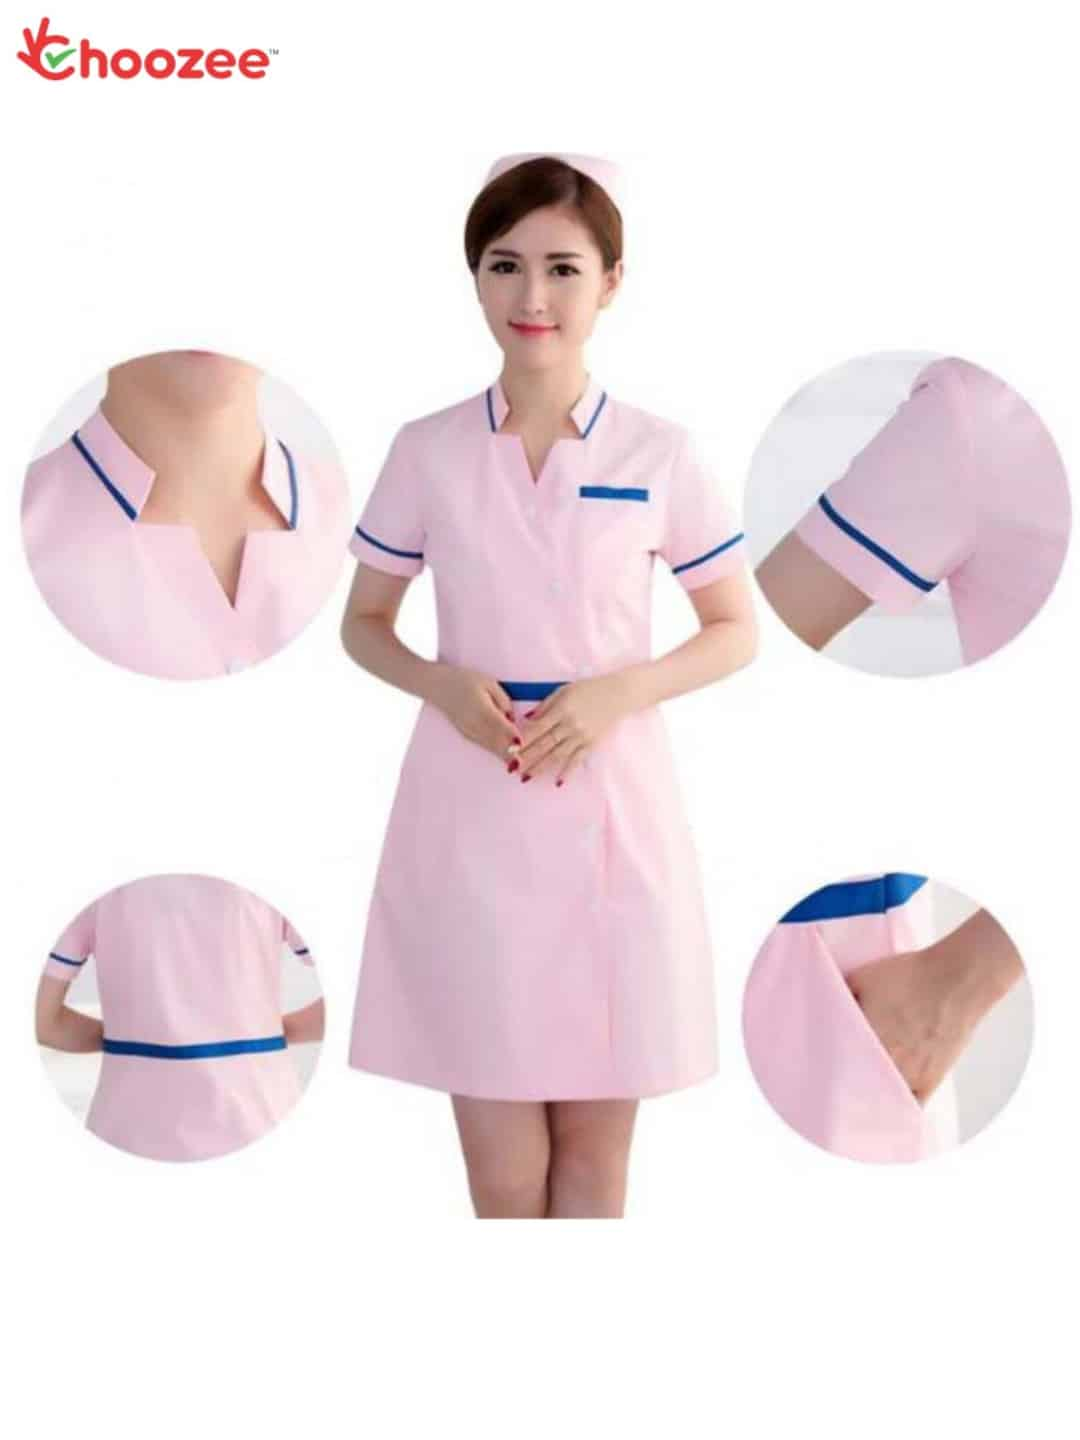 Elegant Medical scrubs